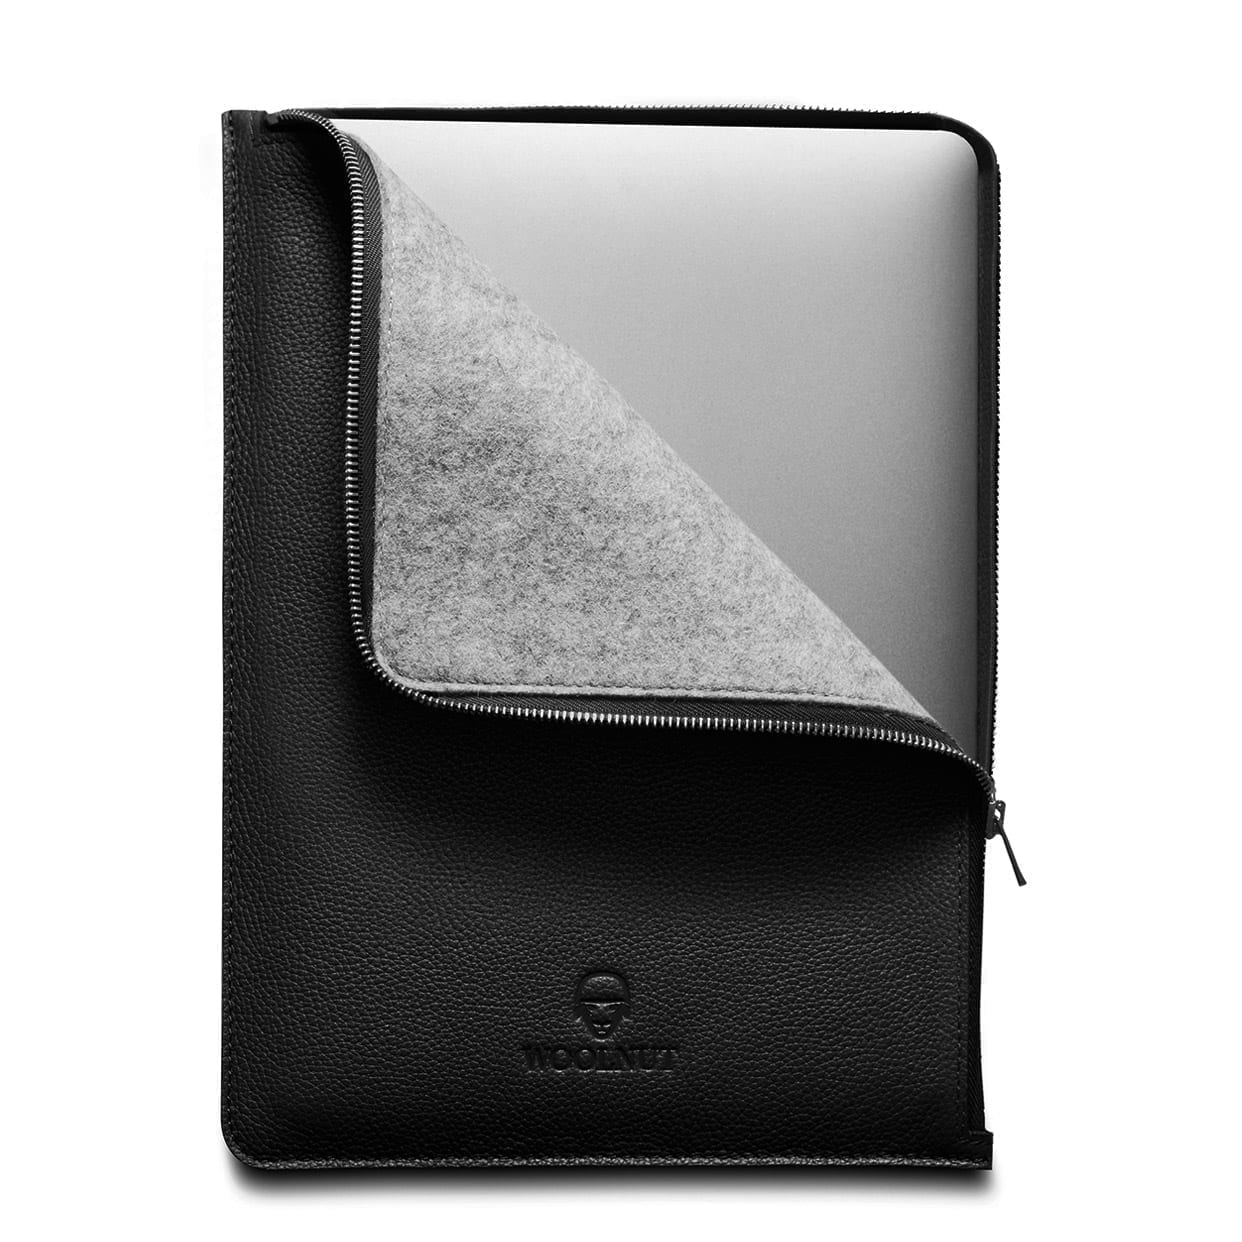 "Woolnut Leather Folio for Macbook 13 Pro & MacBook Air "" (Passer til Macbook Pro 13"" (Sen 2016-2020 modellerne med Retina Display) - Netnaturshop"